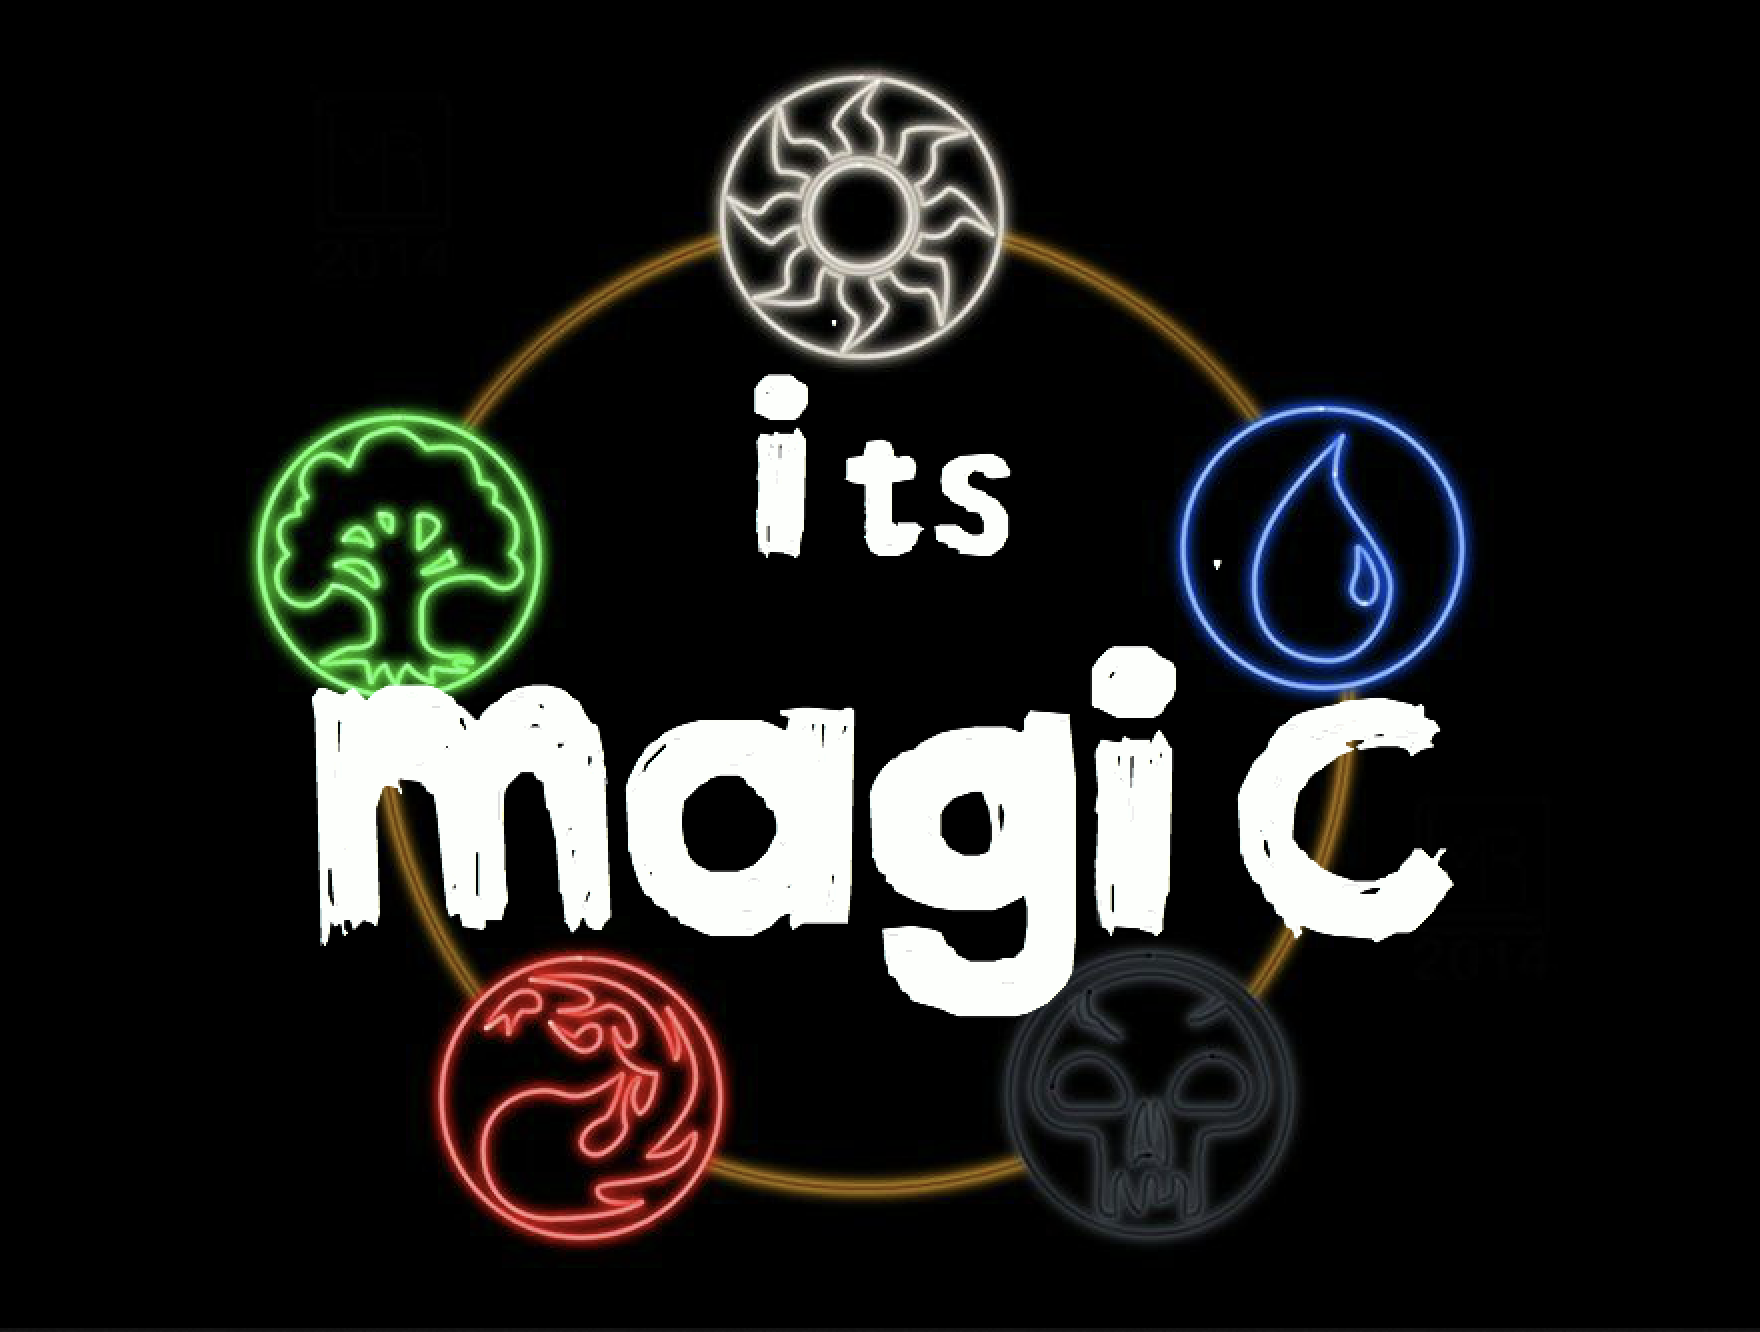 It's Magic - SCI-FI DRAMEDY SERIESInspired by the popular fantasy card game Magic: The Gathering, Fey, an aging-millennial with 99 problems, gets the wake-up-call of a lifetime when she discovers she is a legit Planeswalker (one of the most powerful beings in the Multiverse).*Script and additional materials available upon request.